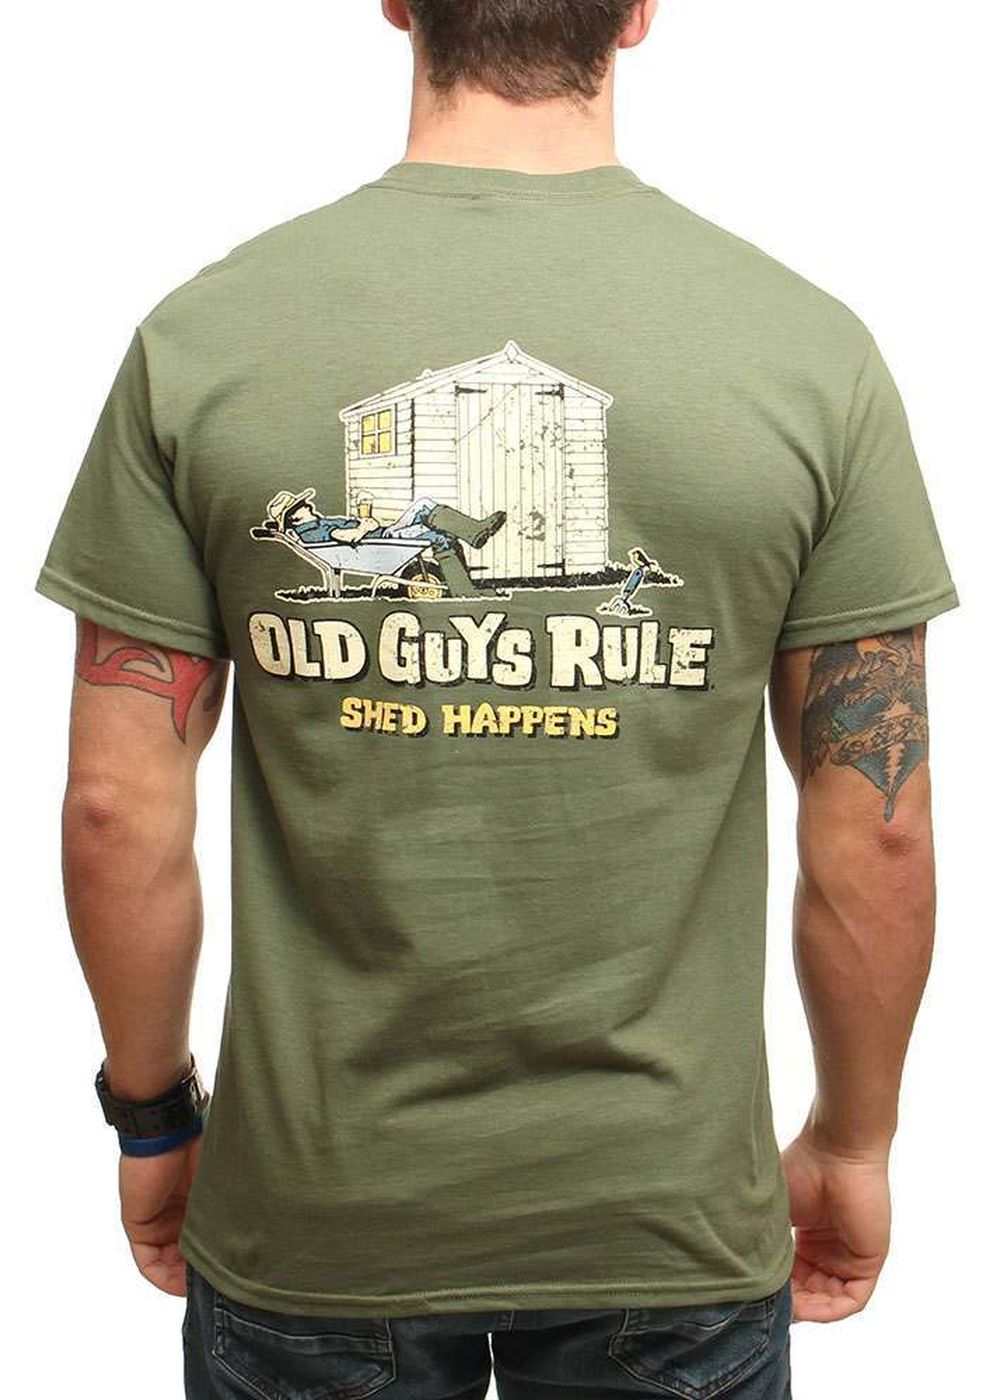 old-guys-rule-shed-happens-2-military-tee-green